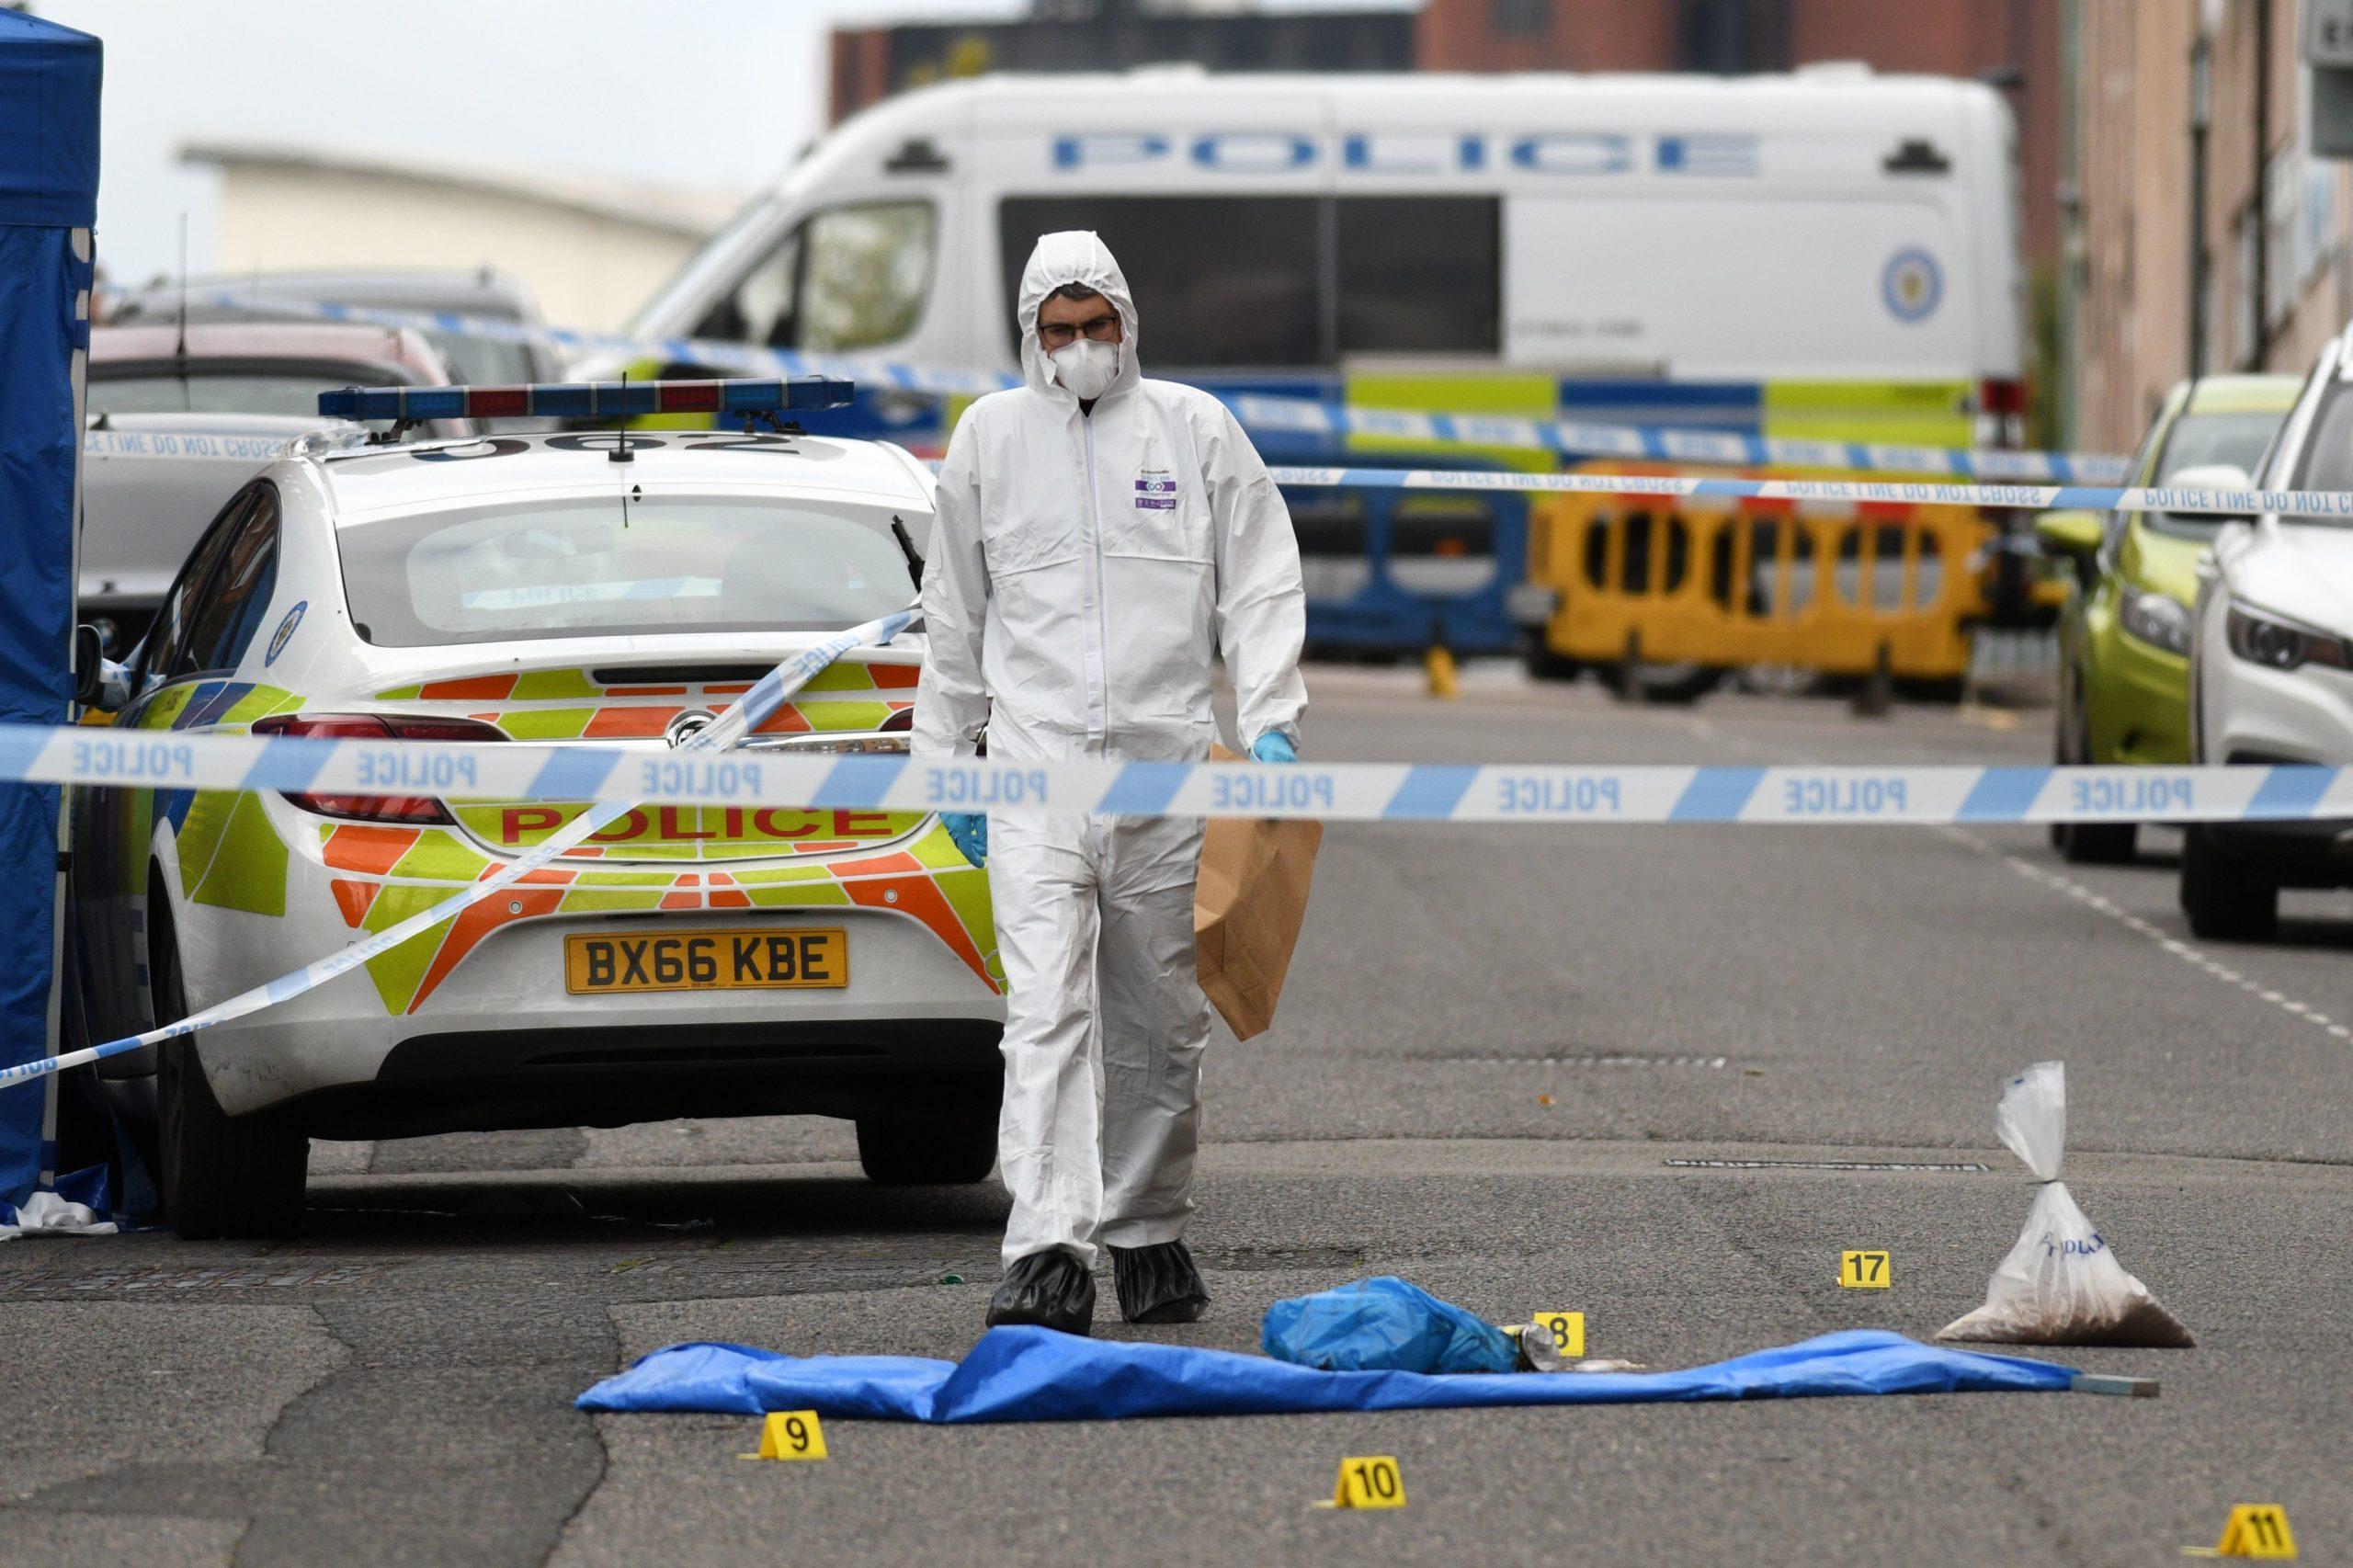 A police forensics officer gathers evidence near to evidence markers inside a cordon on Irving Street, following a major stabbing incident in the centre of Birmingham, central England, on September 6, 2020.(Photo by Oli SCARFF / AFP)